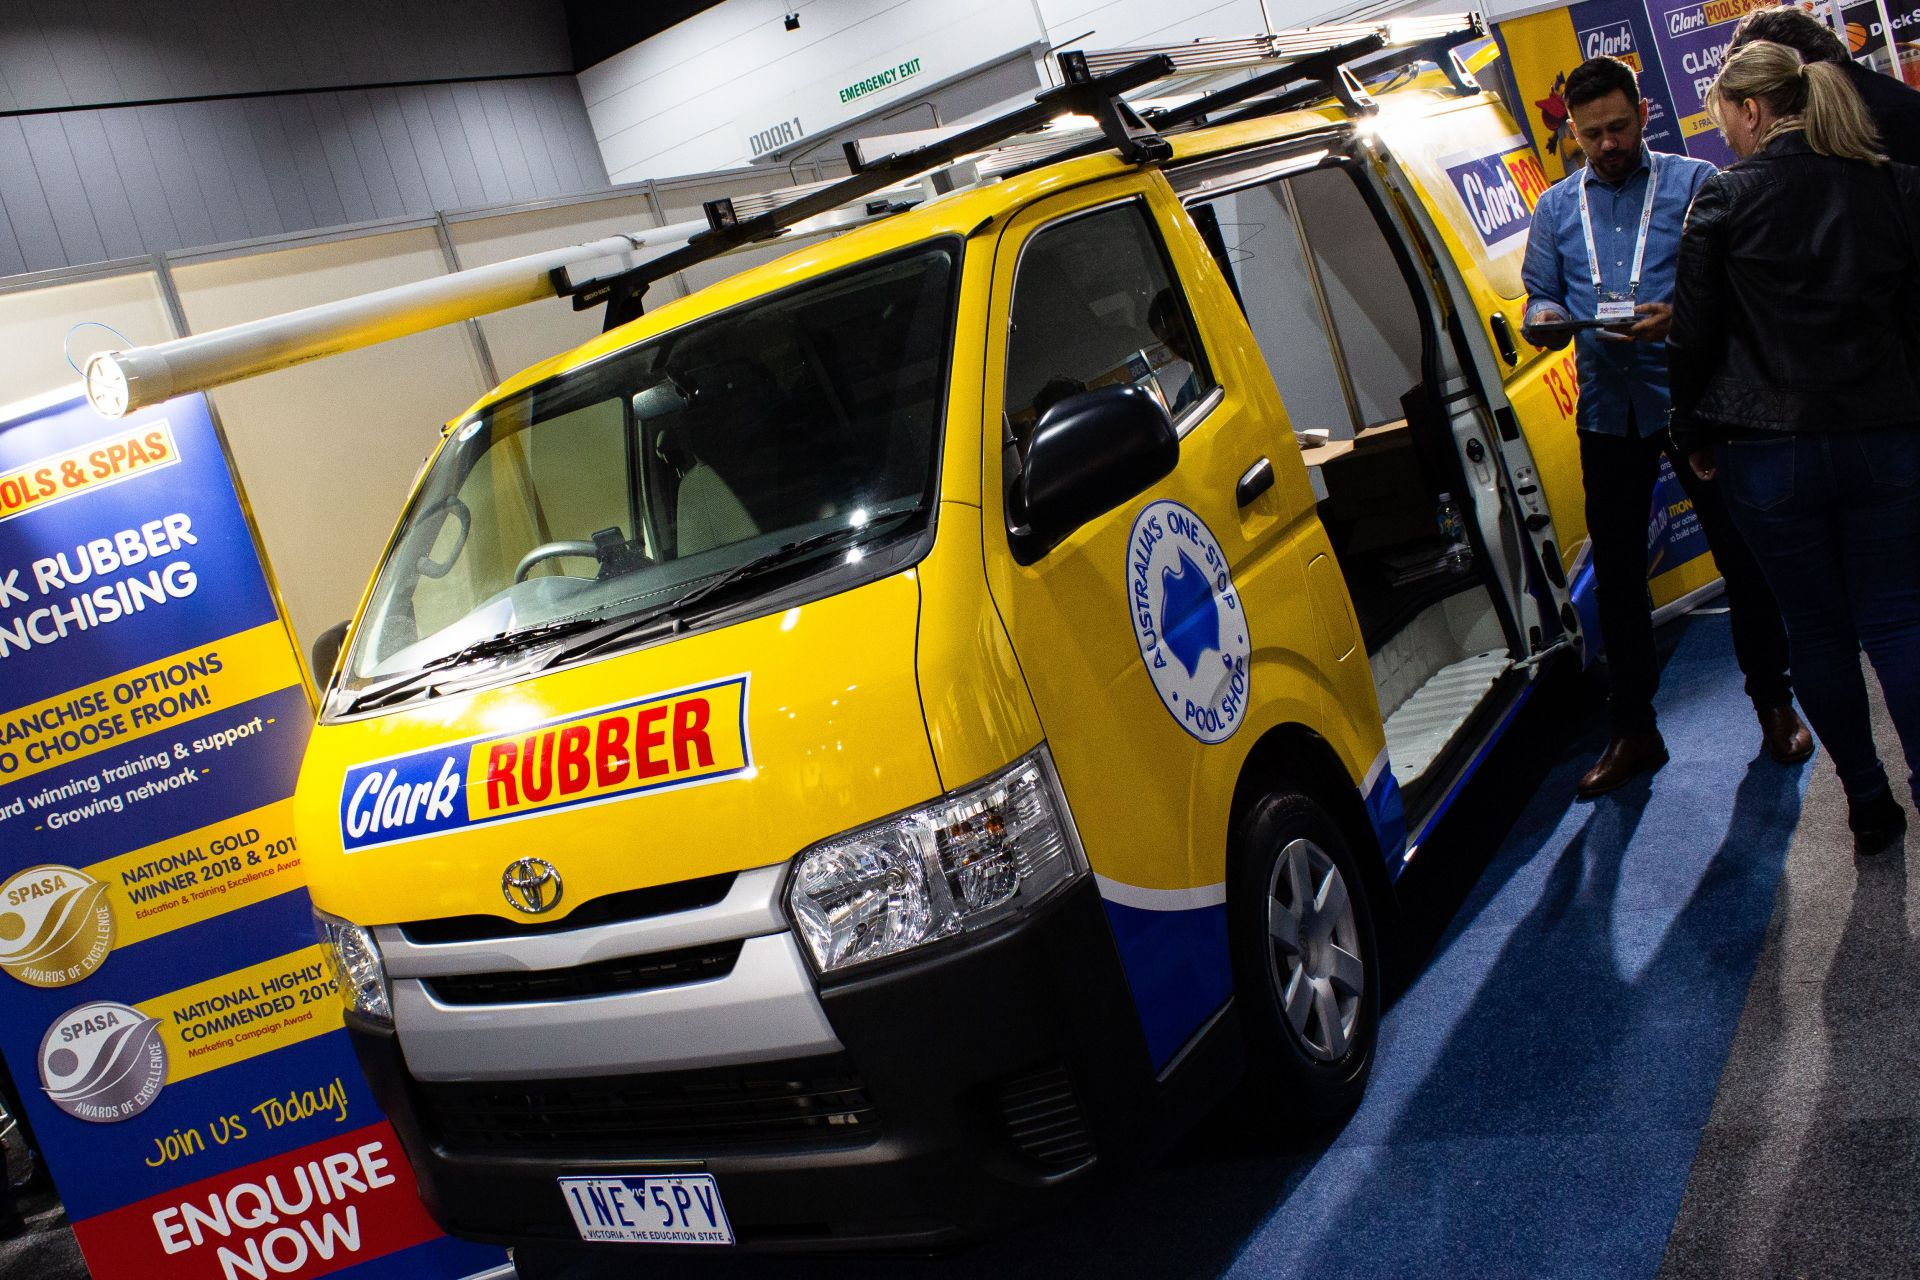 Clark Rubber mobile-only model launches | Inside Franchise Business